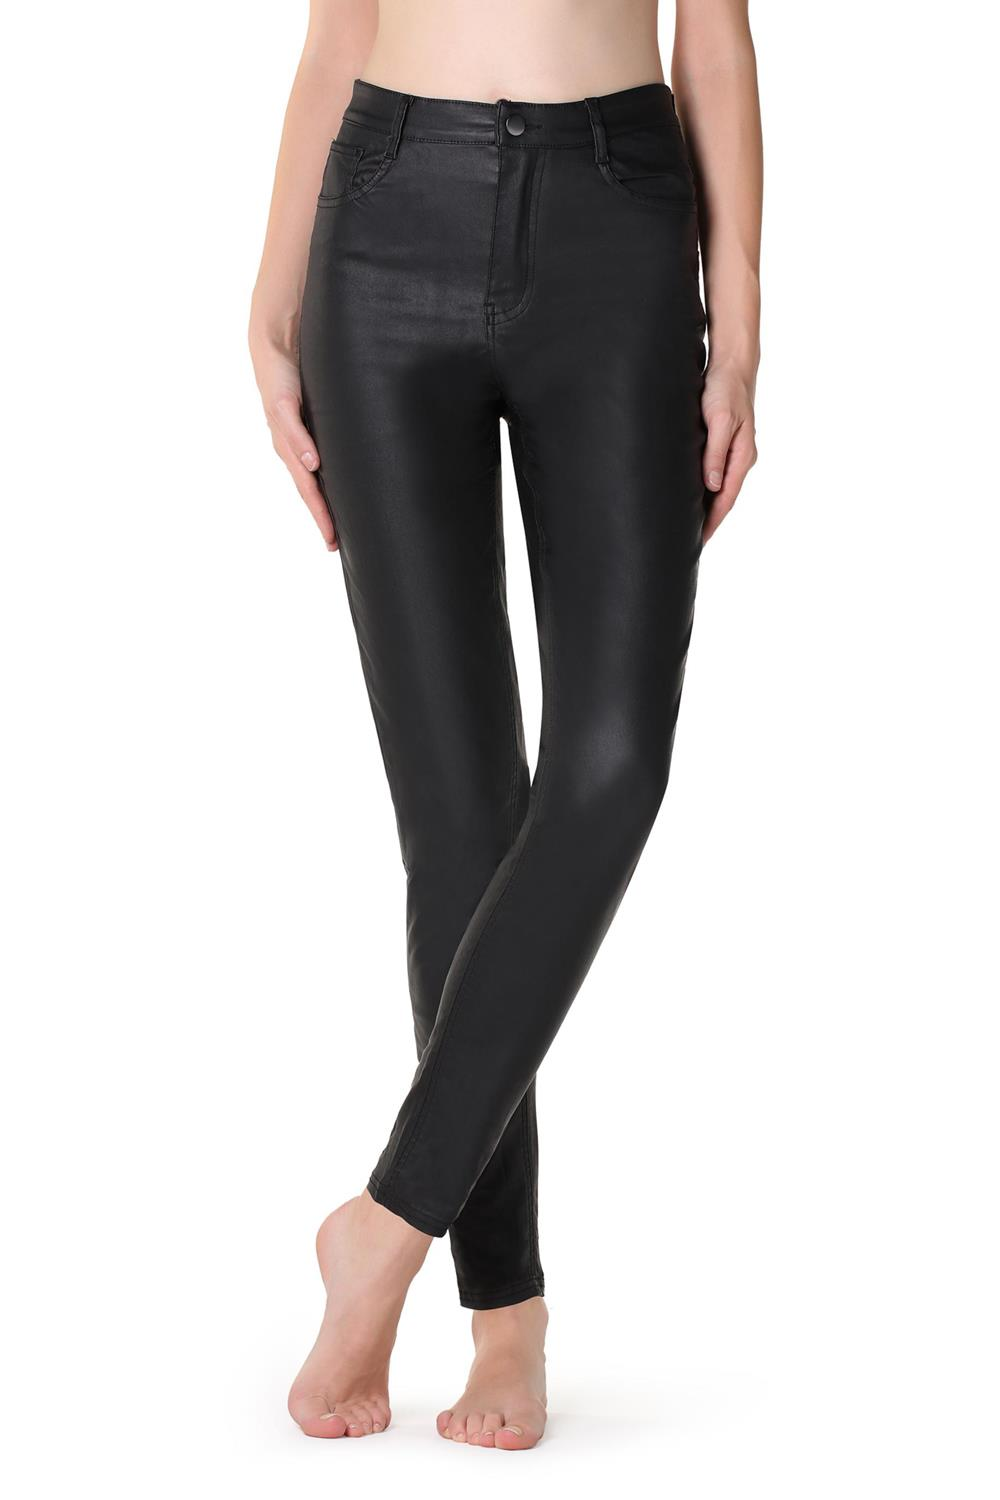 looks leggings calzedonia piel. En piel